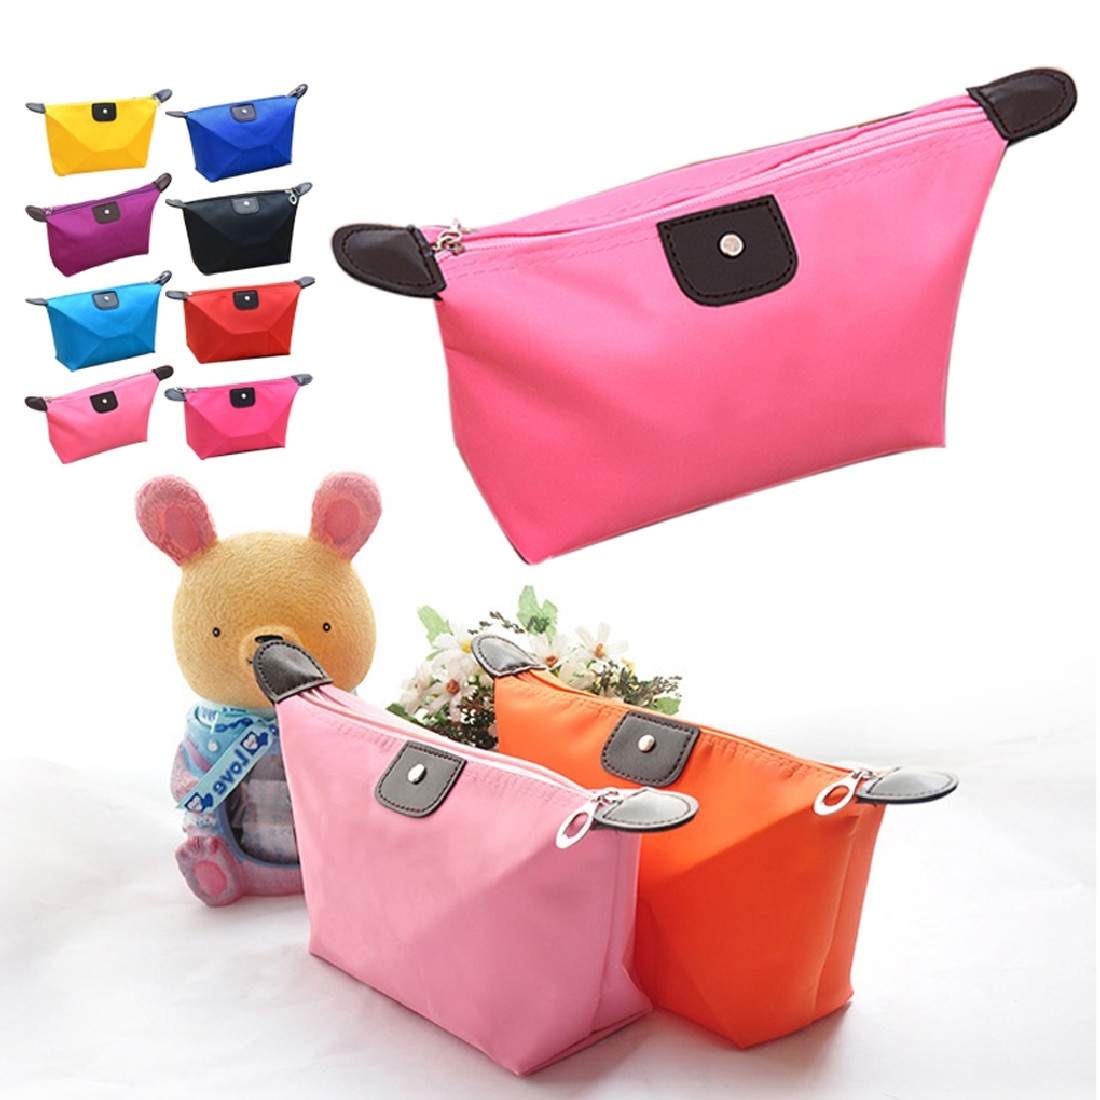 Good Quality WomenS Pouch Bag Handbag Travel Make Up Cosmetic Purse Zipper Holder Organiser Storage Toiletry